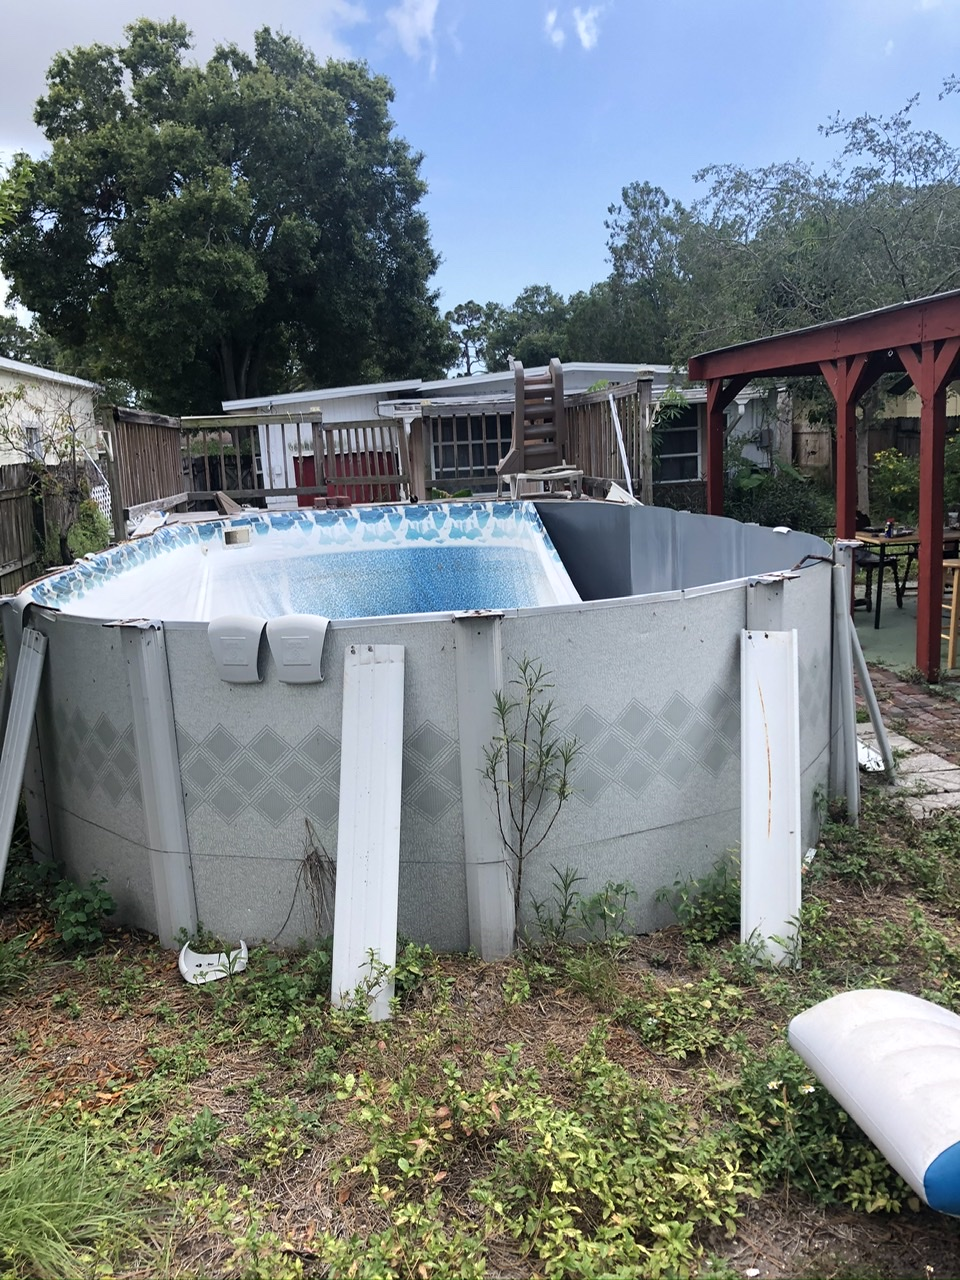 This is a picture of the pool showing the top edge where the metal coping goes.